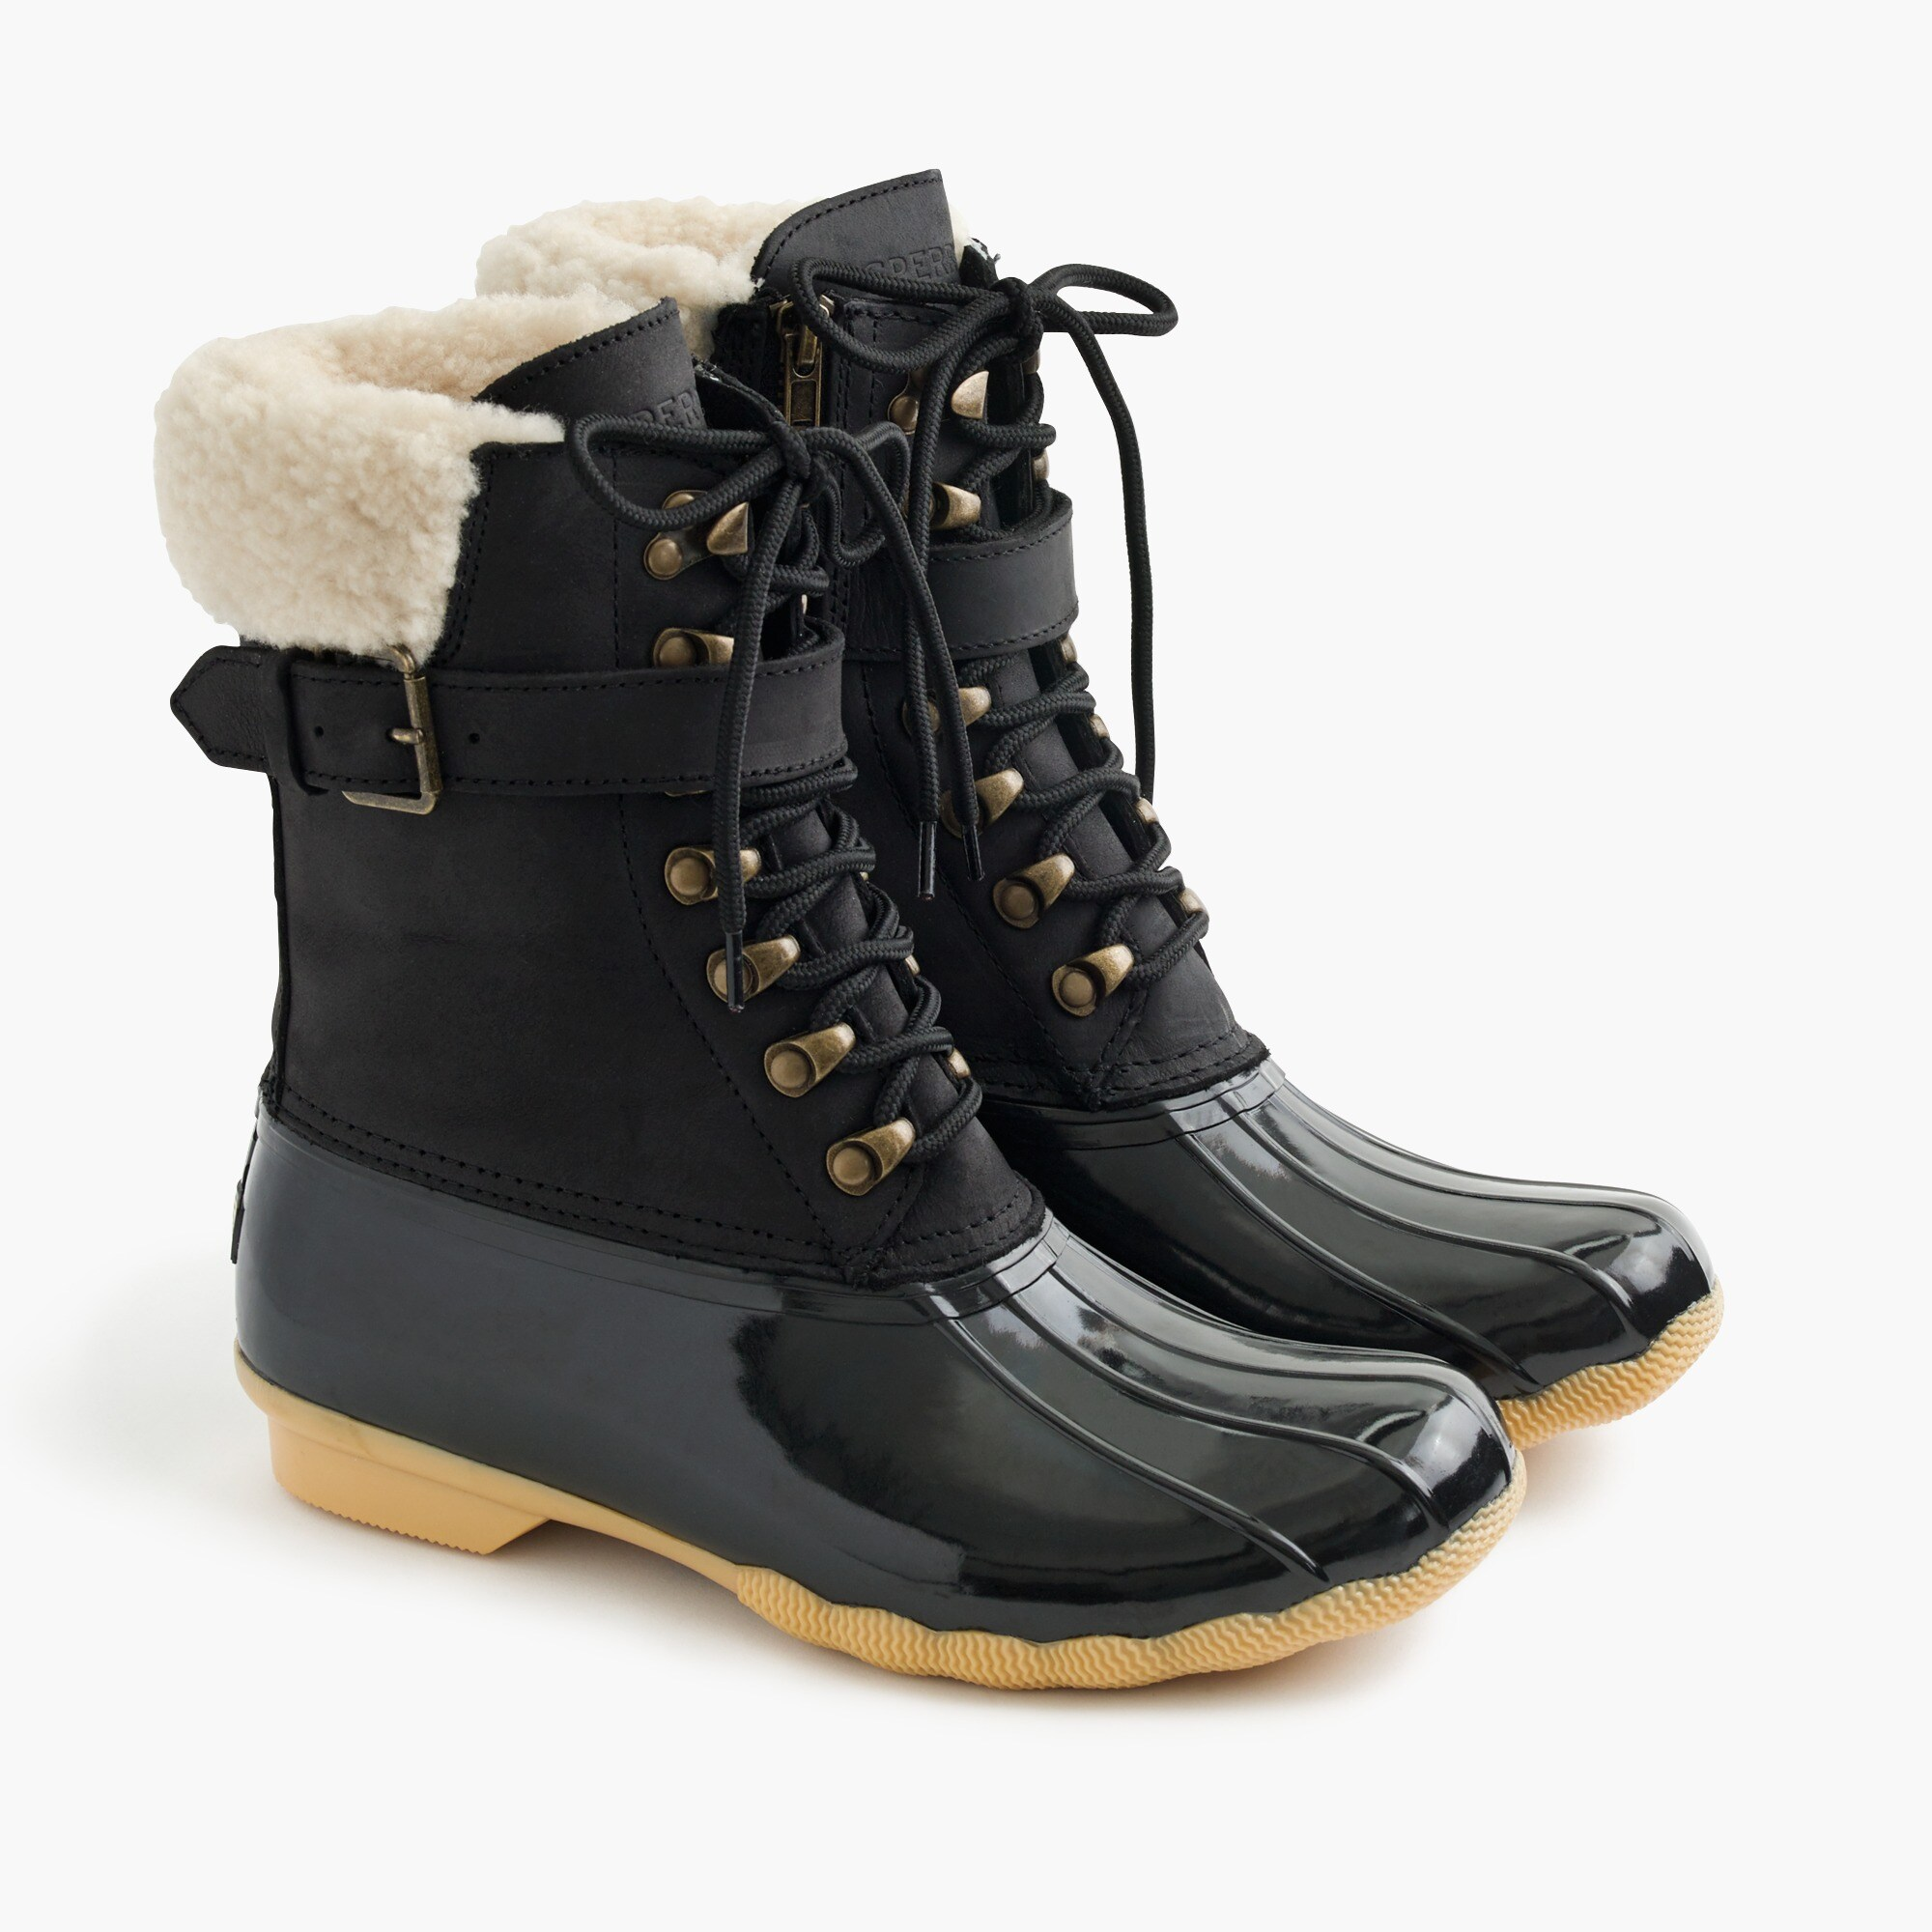 Image 1 for Women's Sperry® for J.Crew Shearwater buckle boots in black